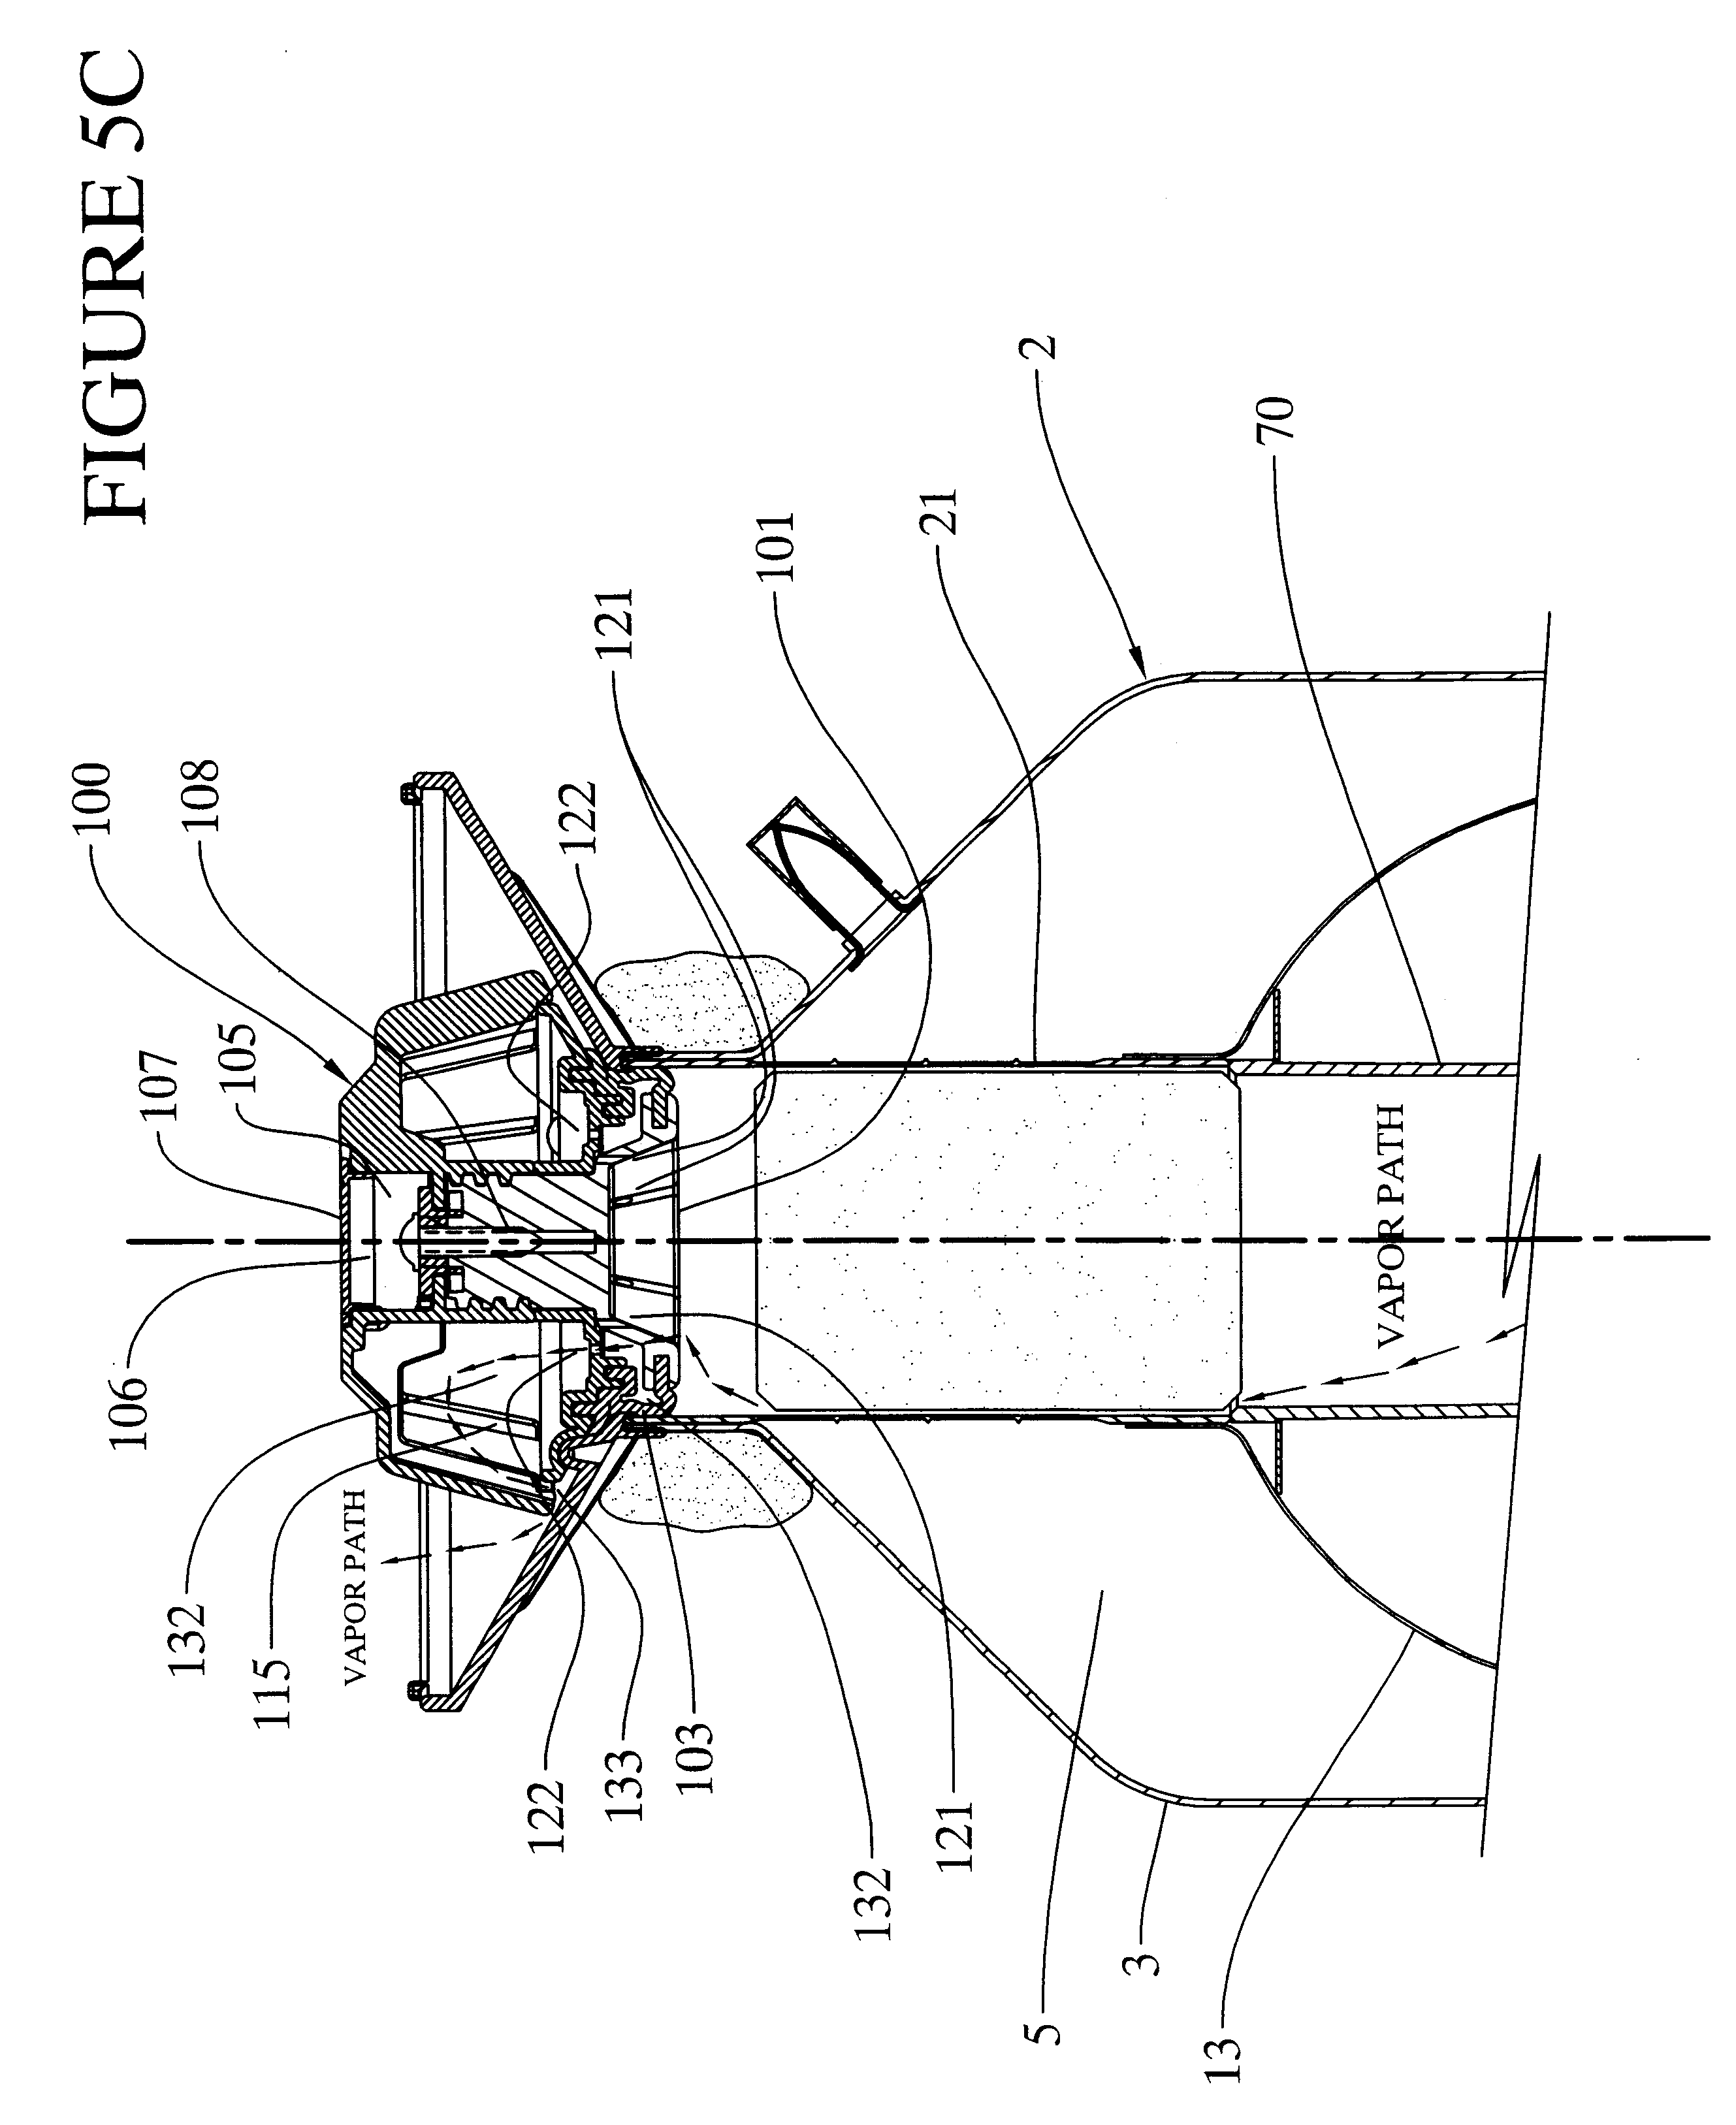 US06467642 20021022 D00007 patent us6467642 cryogenic shipping container google patents